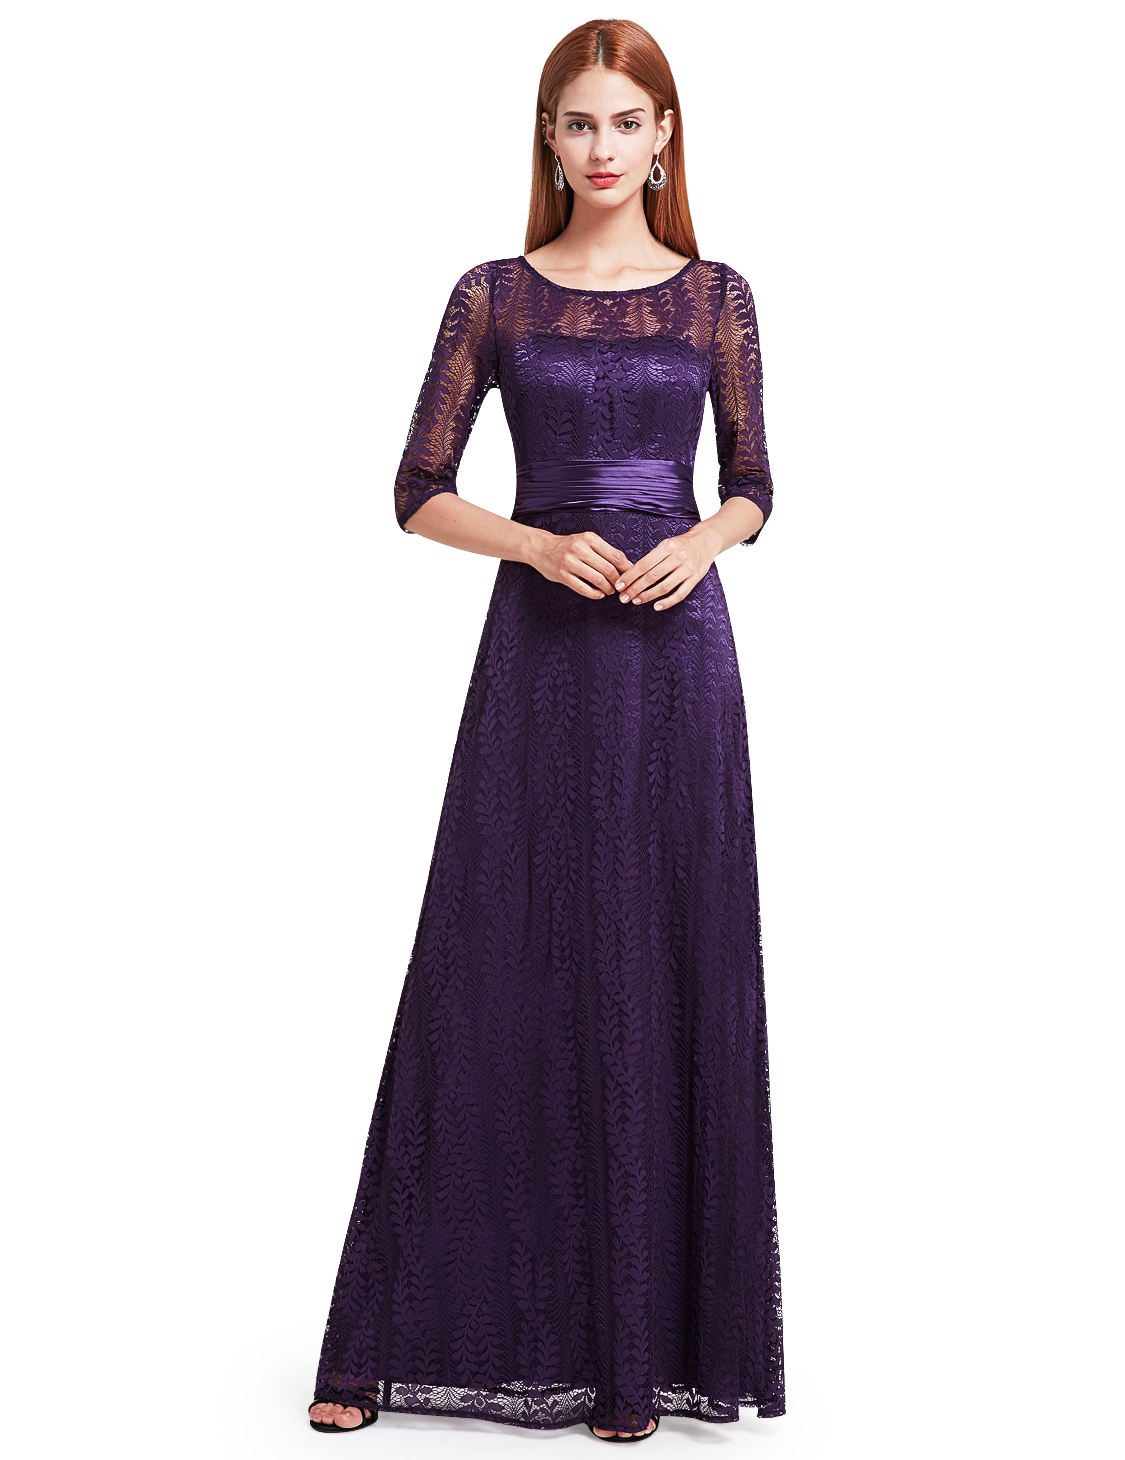 Ever-Pretty-Long-Bridesmaid-Dress-Lace-Formal-Evening-Cocktail-Prom-Dress-08878